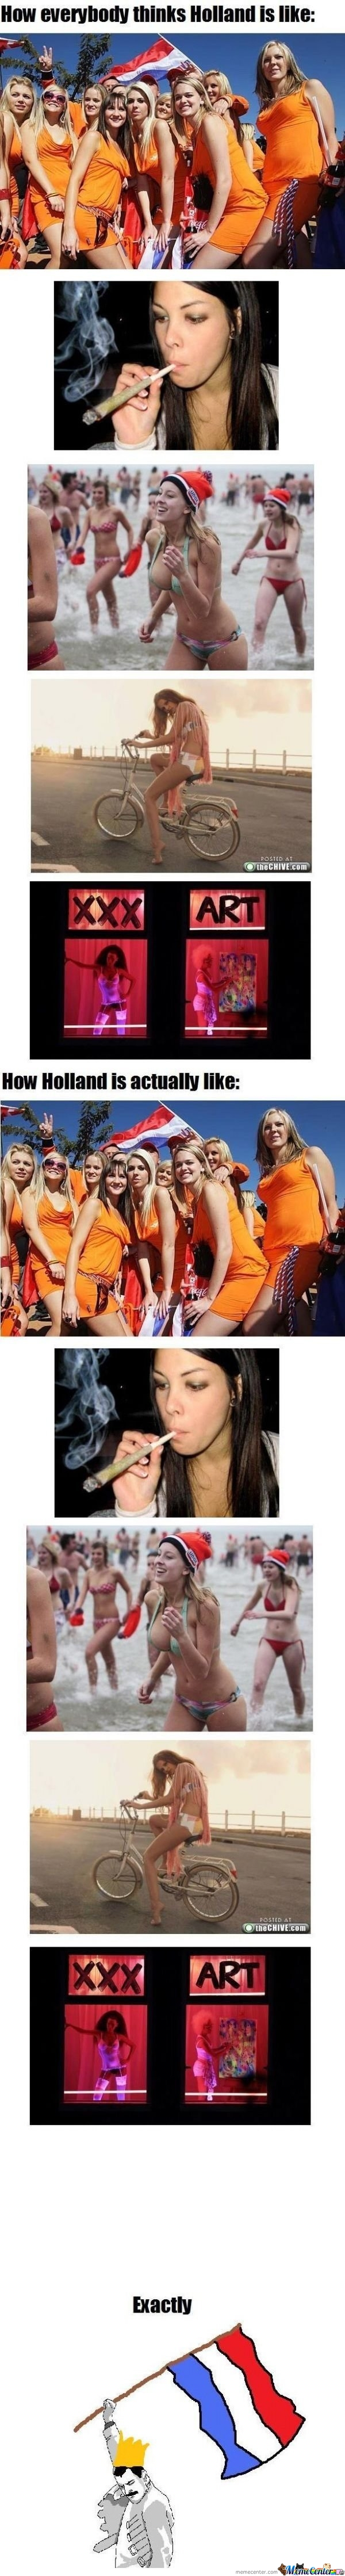 Holland Girls